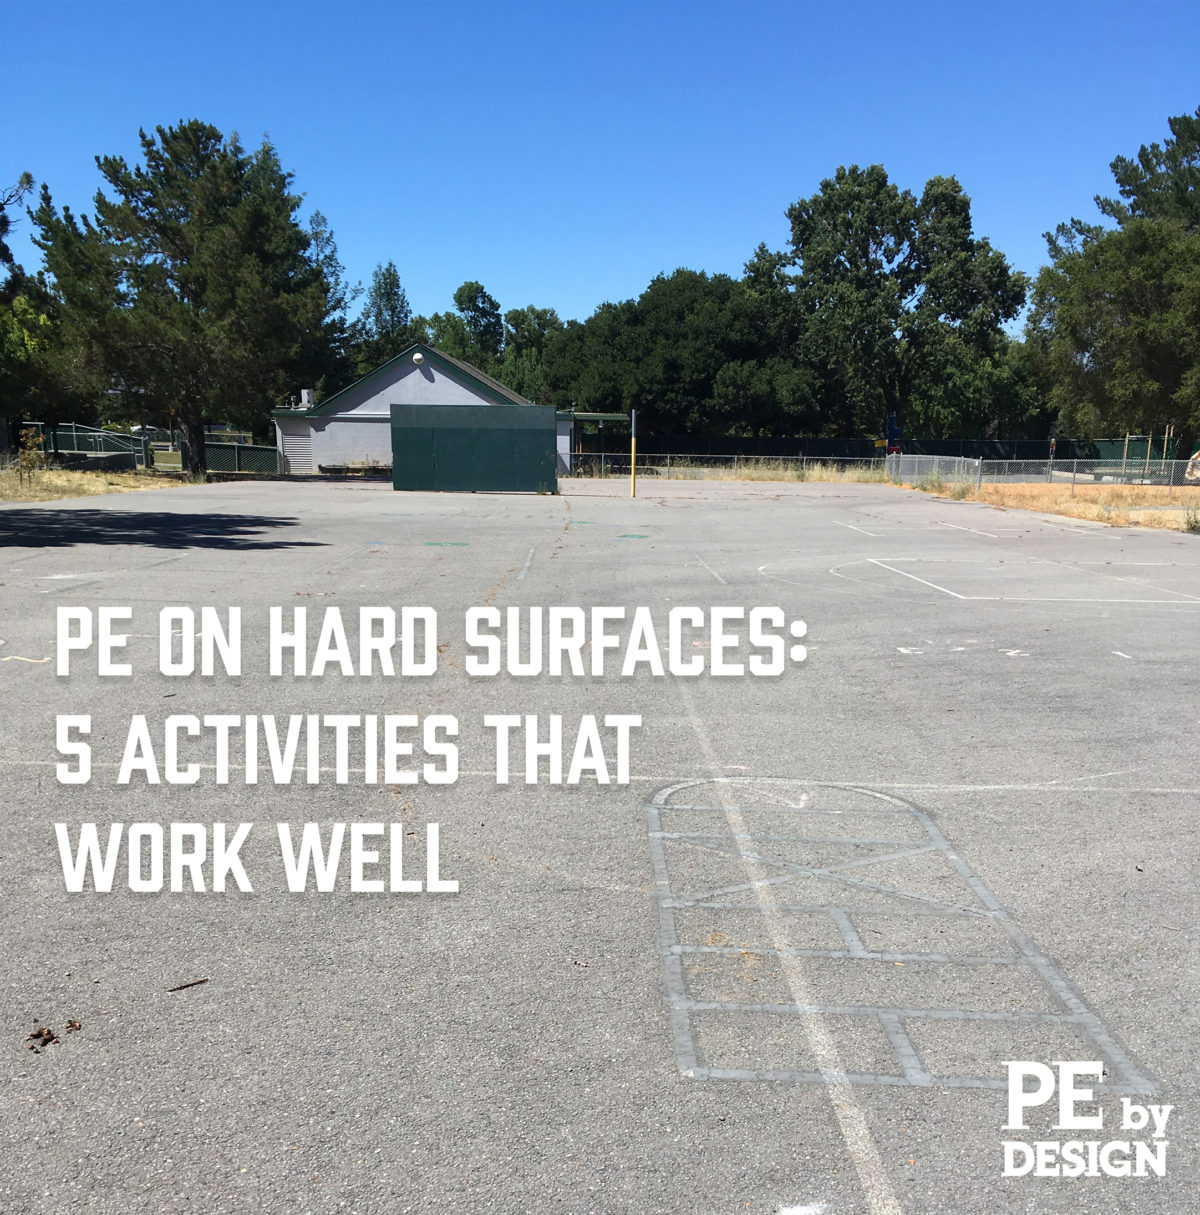 PE on Hard Surfaces: 5 Activities that Work Well